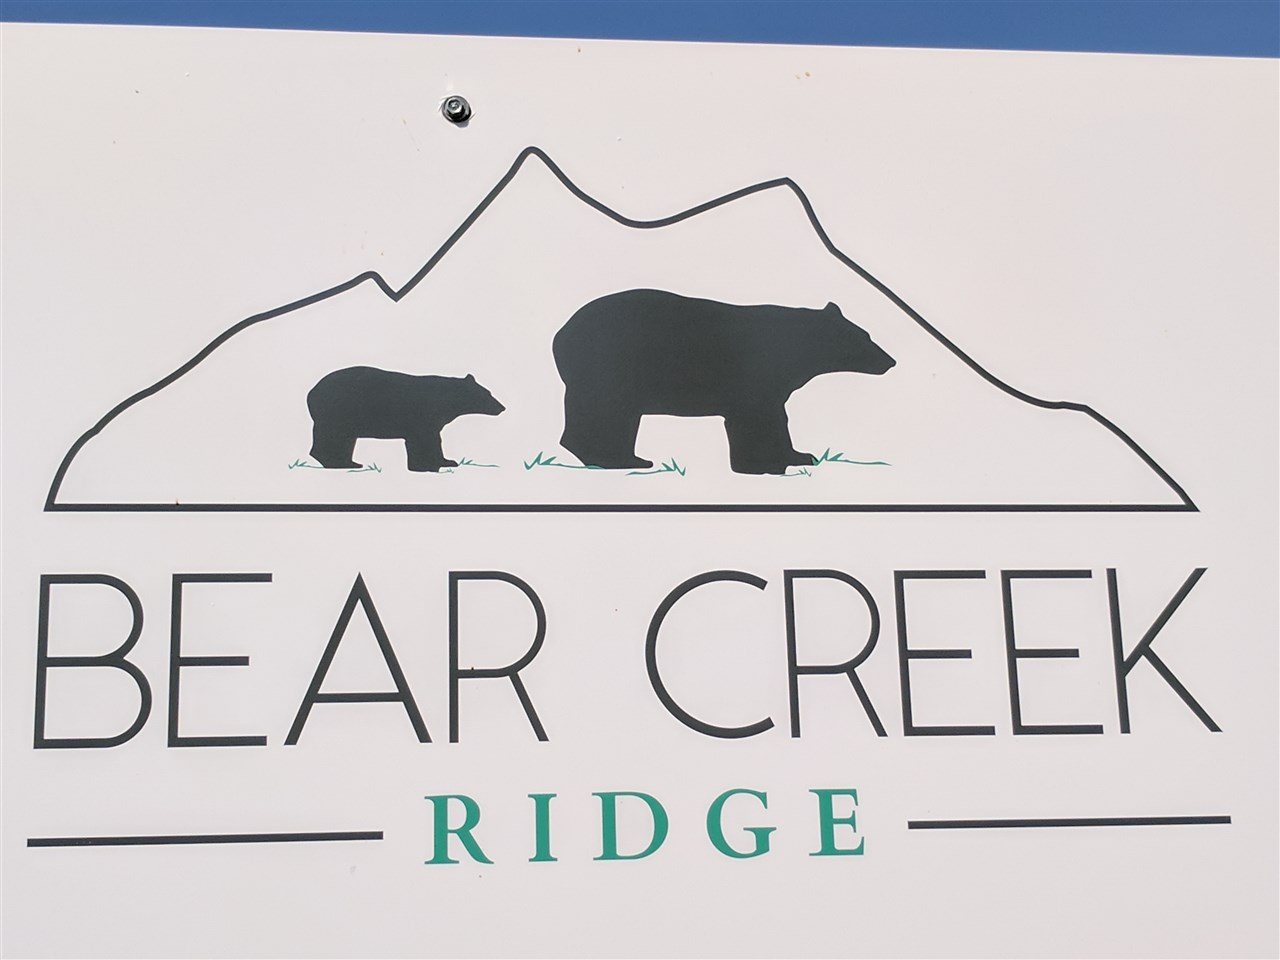 Bear Creek Ridge is a Bare land strata of building lots that are now available on lower Promontory . Nice unobstructed view of Sardis and Vedder Crossing. A nice, quiet area to build your dream home. Roads and services are being installed and are expected to be completed this fall. Bring your own builder or the Seller will build to suit. Call for details.